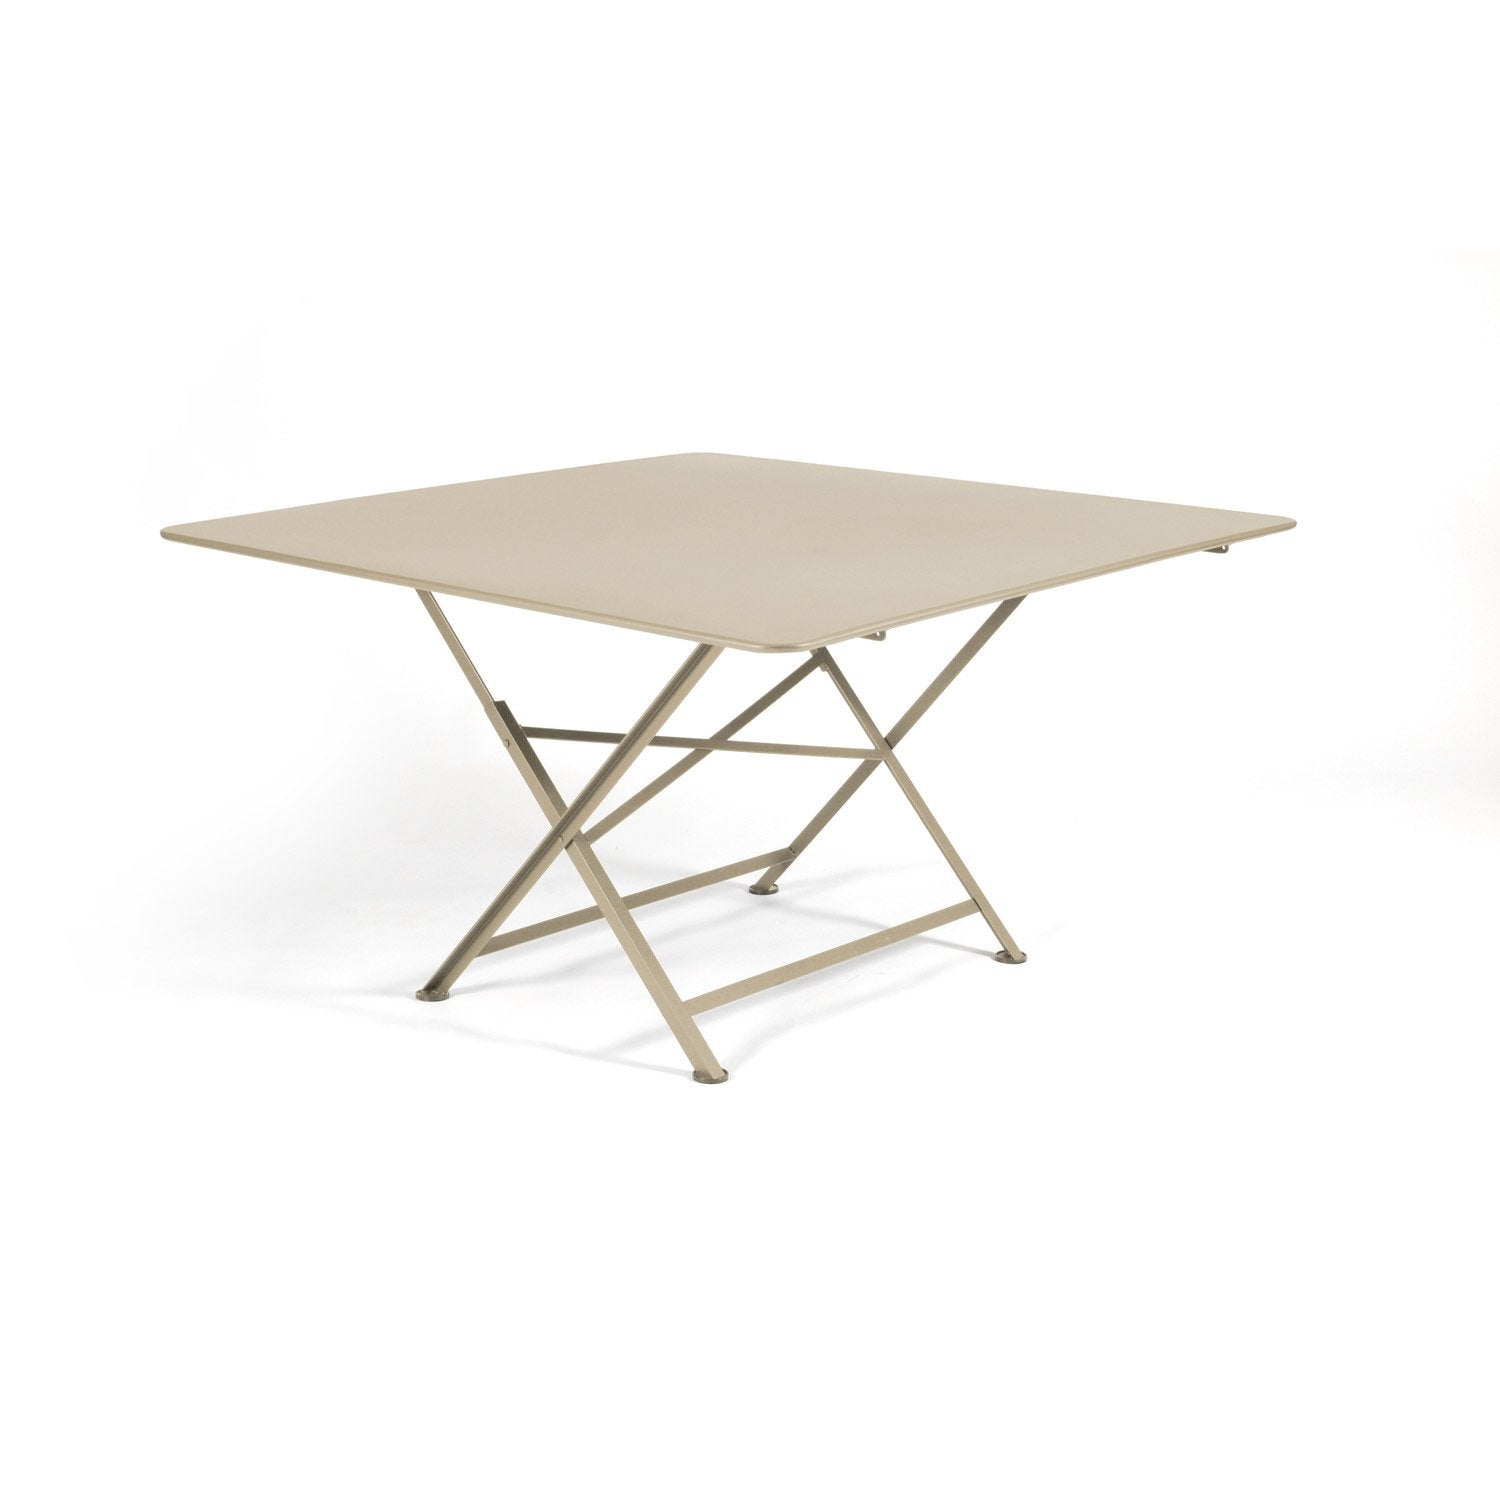 Table de jardin fermob cargo carr e muscade 8 personnes for Fermob table de jardin